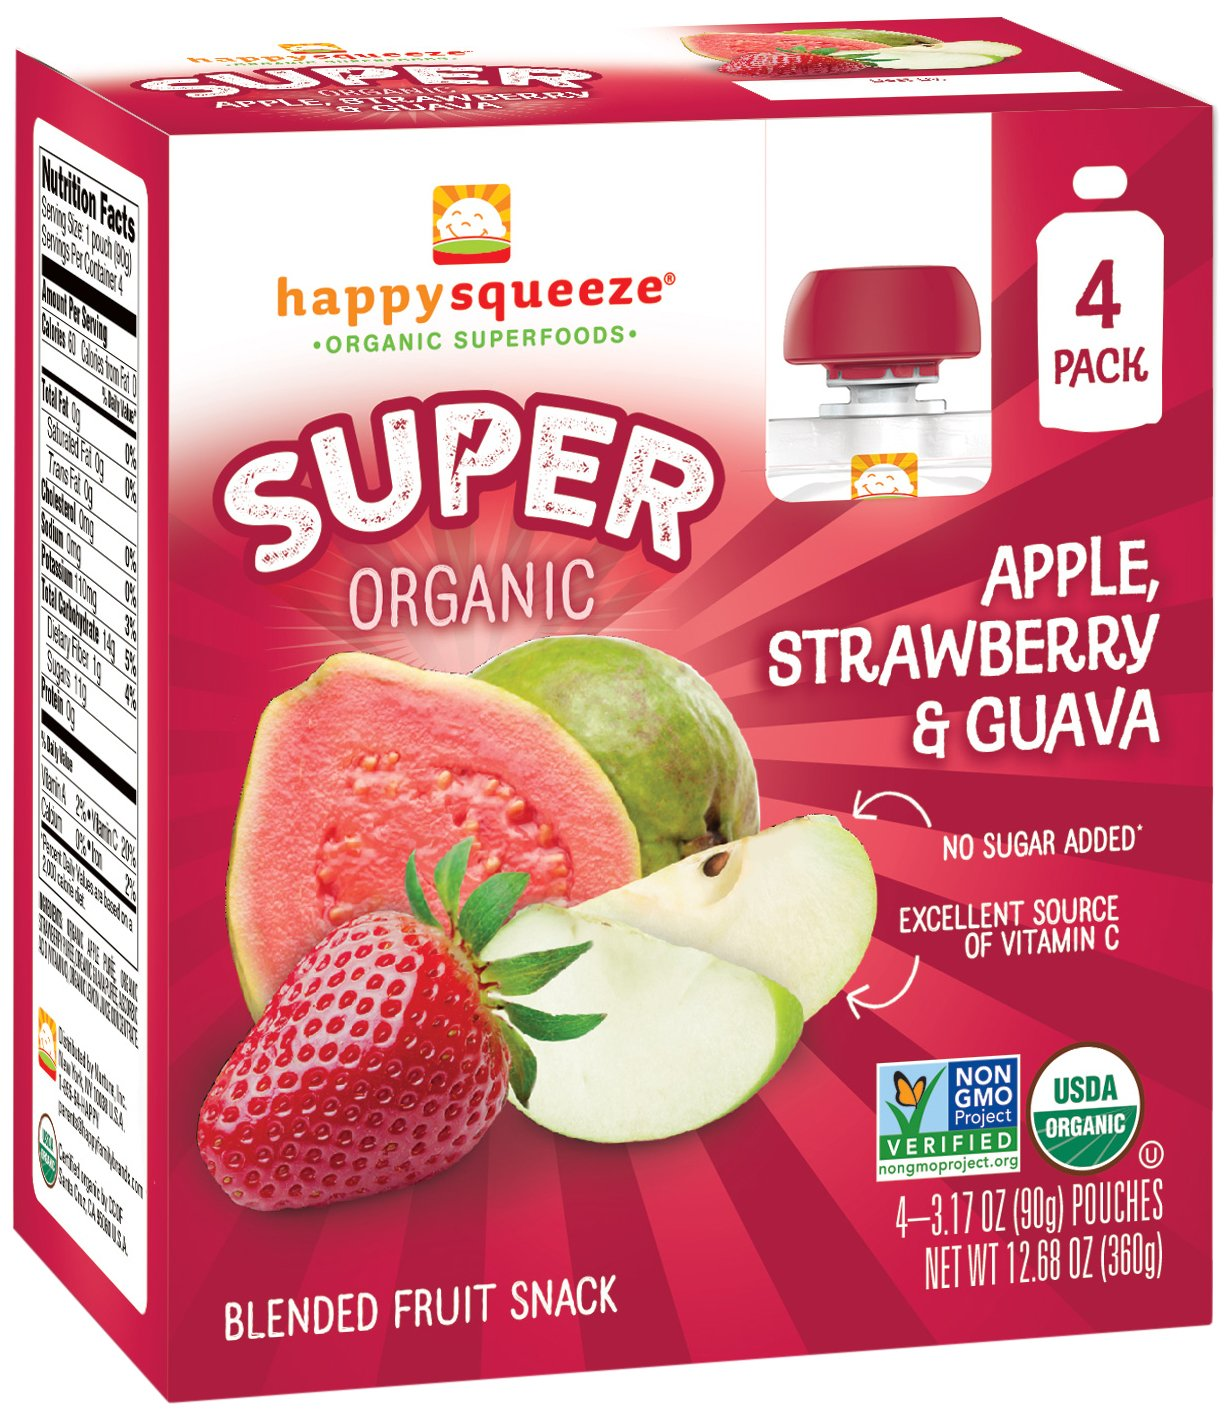 Happy Squeeze Organic Superfoods, Twist Organic Apple/Kale/Blueberry, 3.17 Ounce (Pack of 16) Nurture Inc. 01235